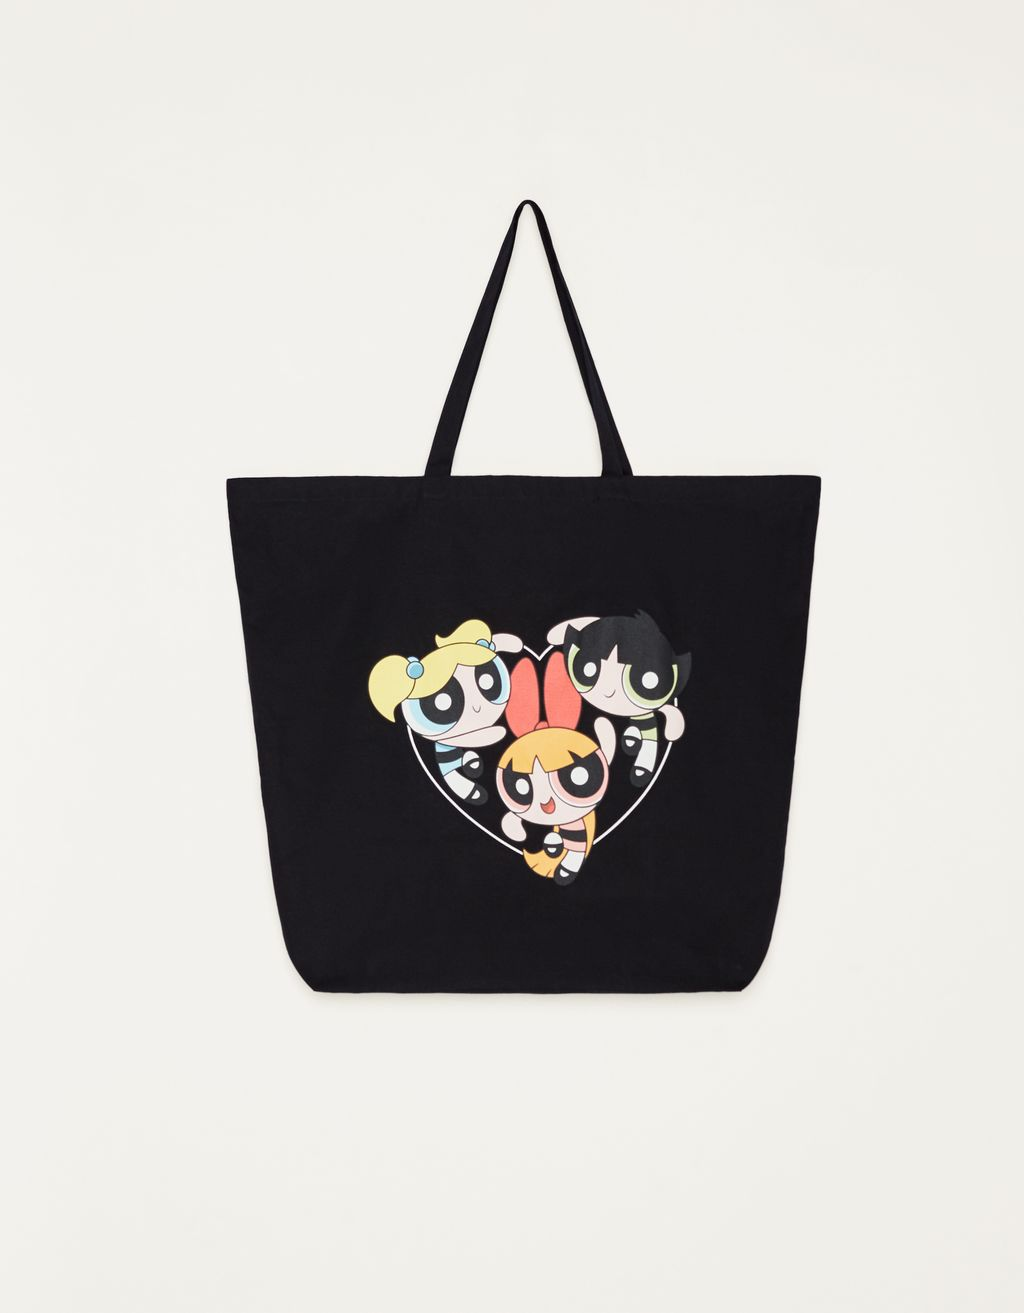 Iepirkumu soma 'The Powerpuff Girls x Bershka'